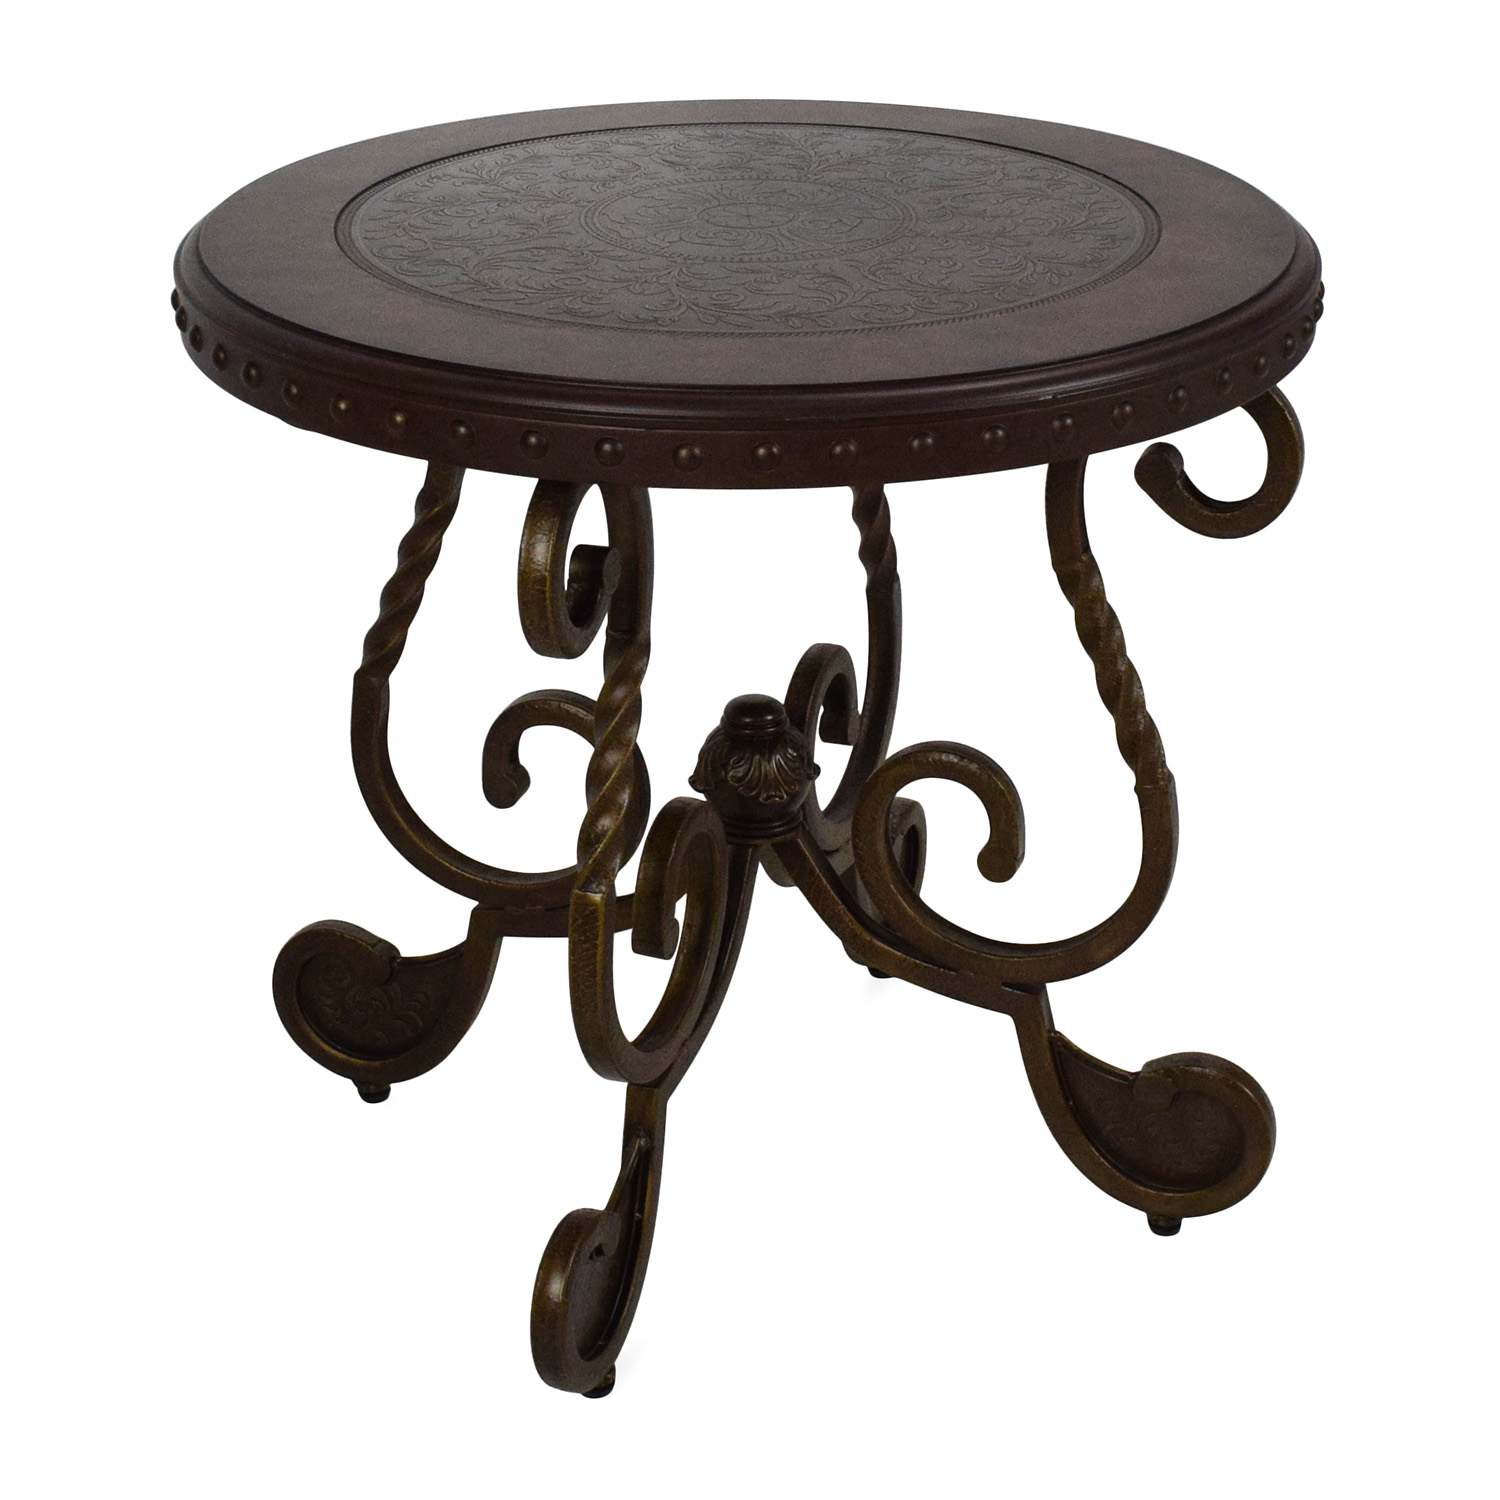 OFF Ashley Furniture Ashley Rafferty Round End Table Tables - Ashley furniture high top table